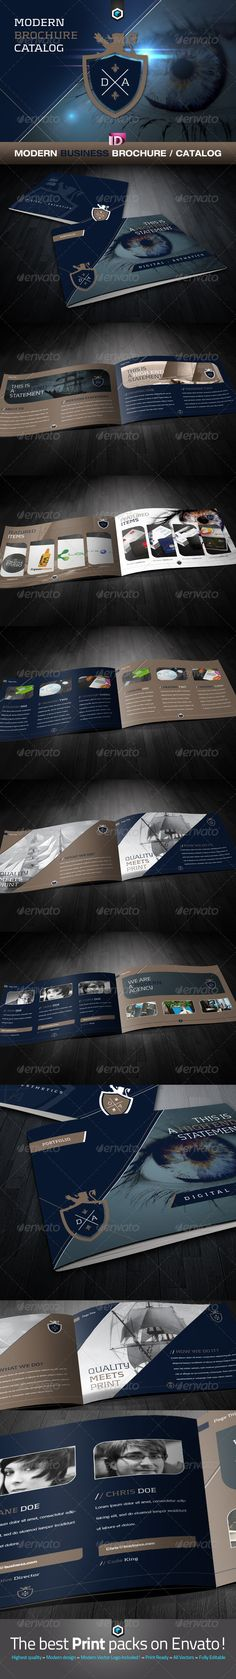 Pocket Folders Printing - Guaranteed high quality printing of - use case diagram template